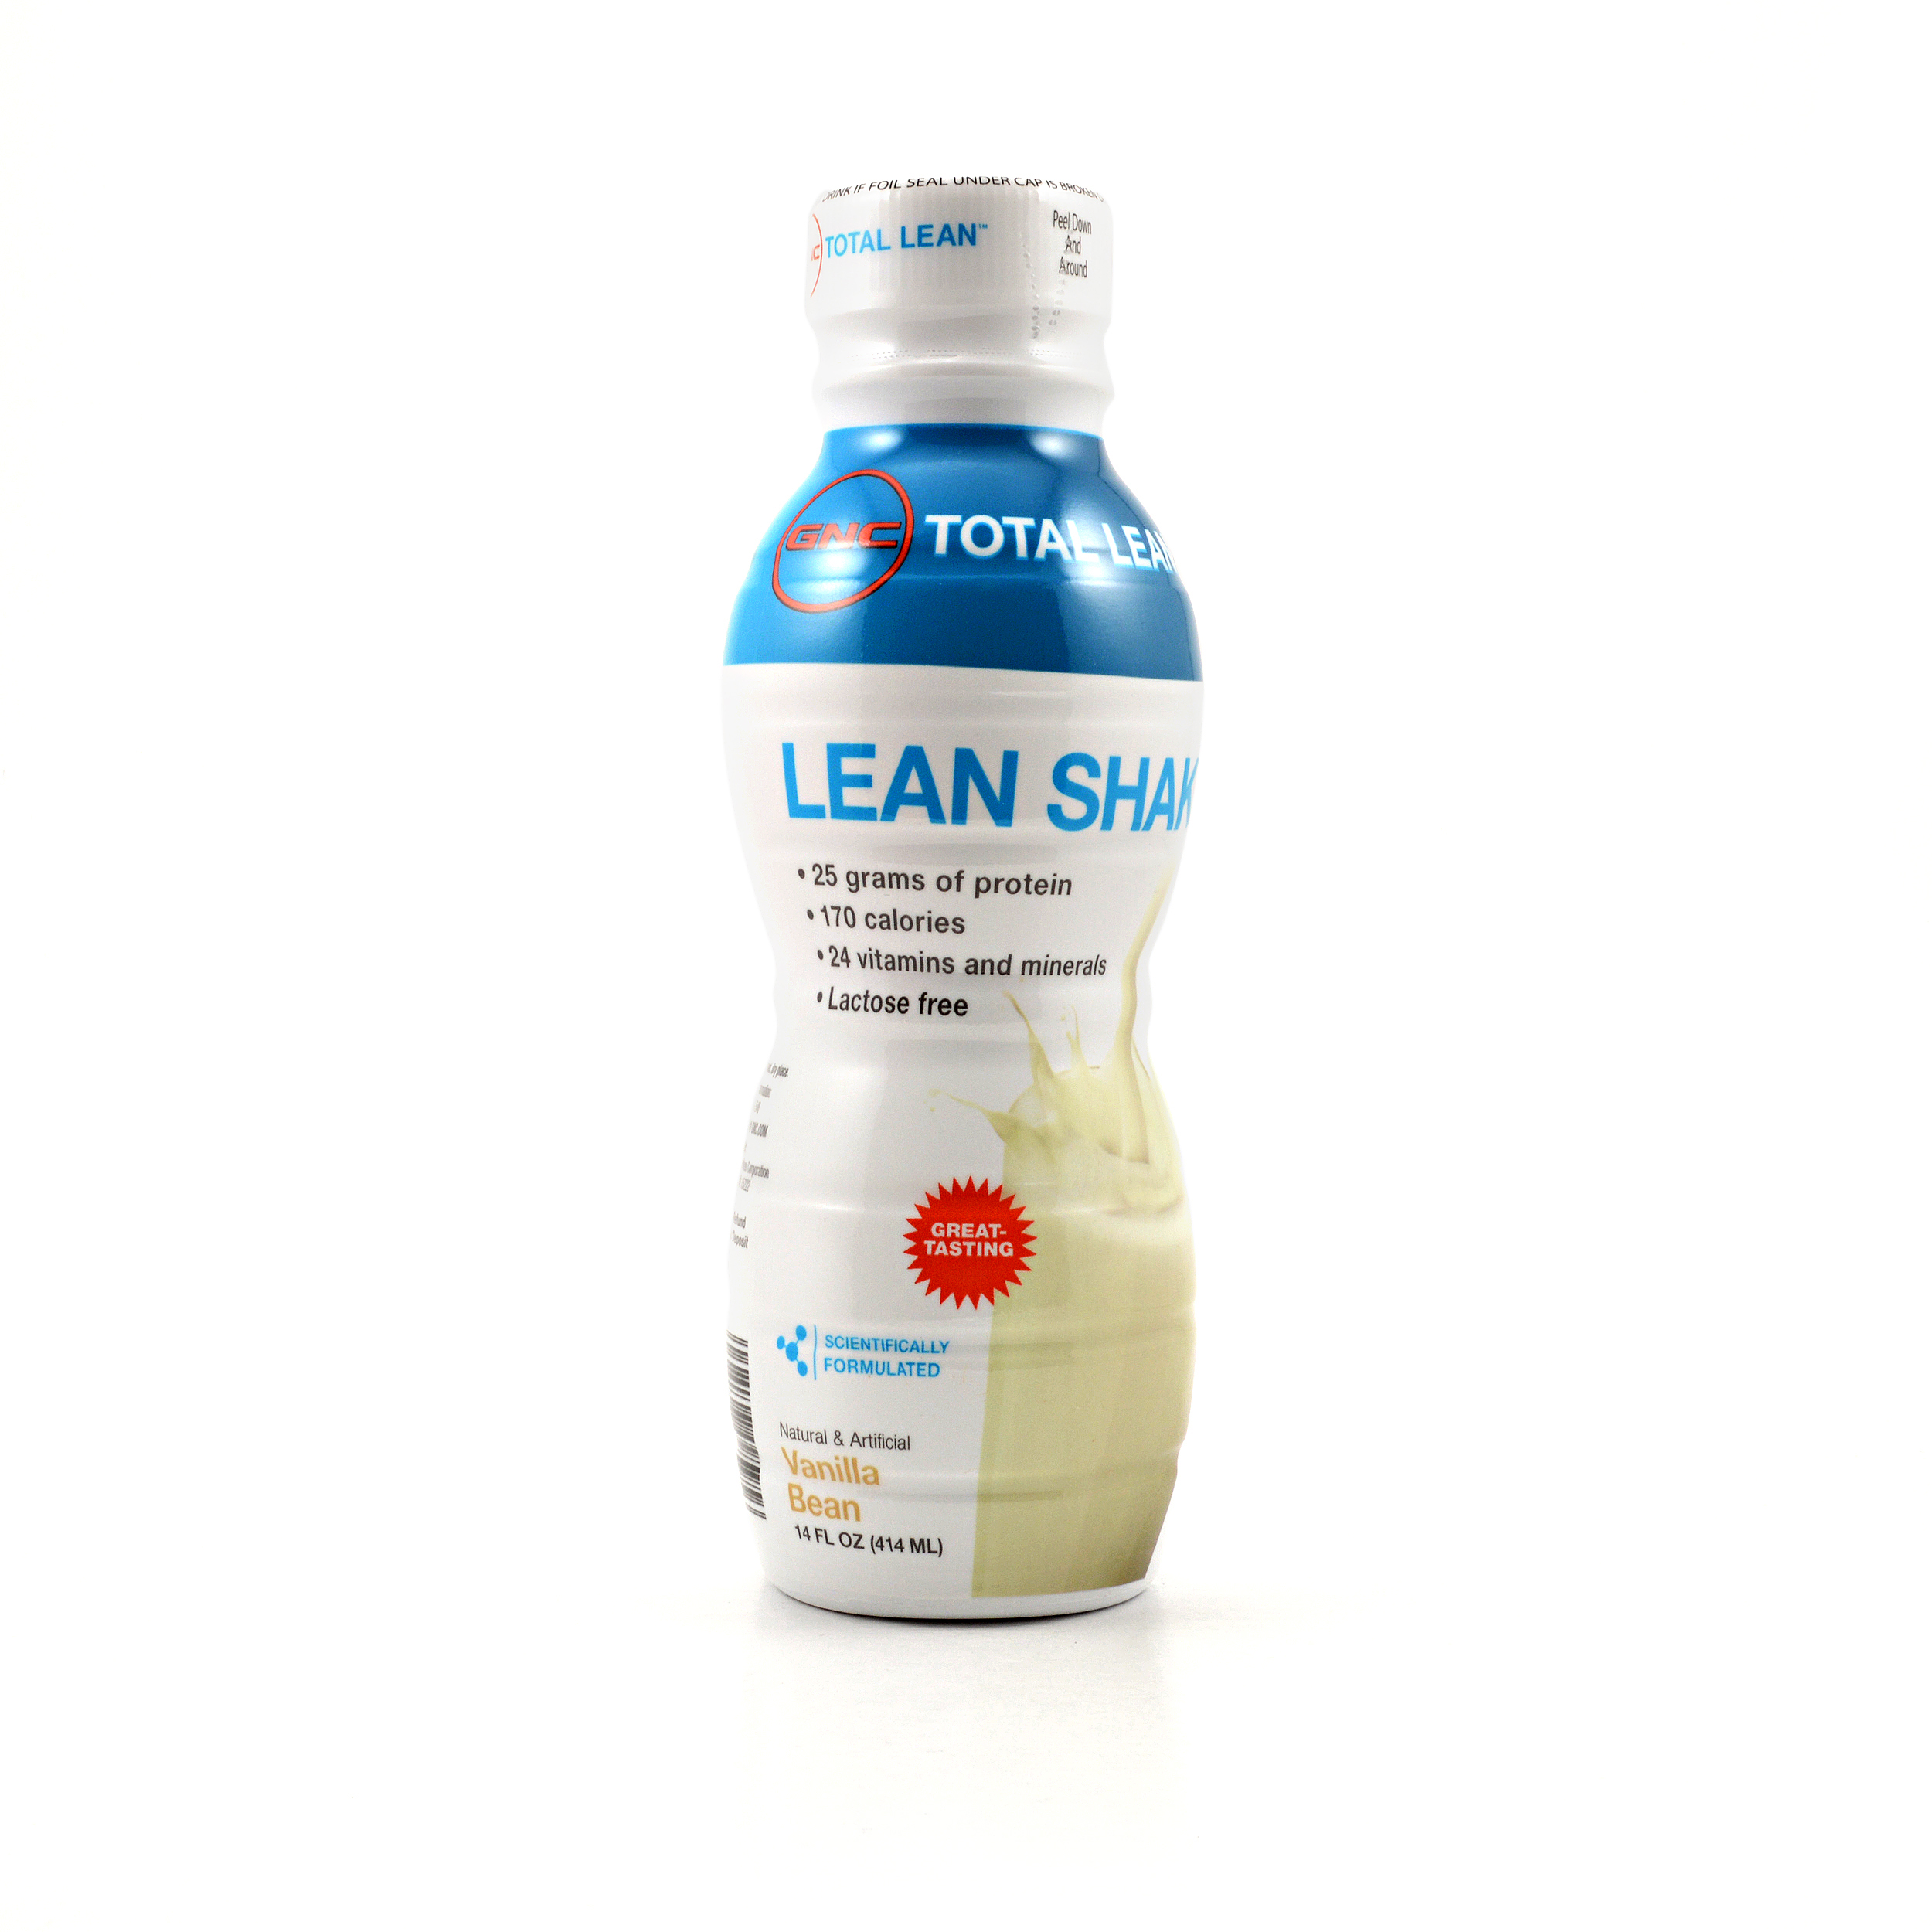 Total lean protein shake